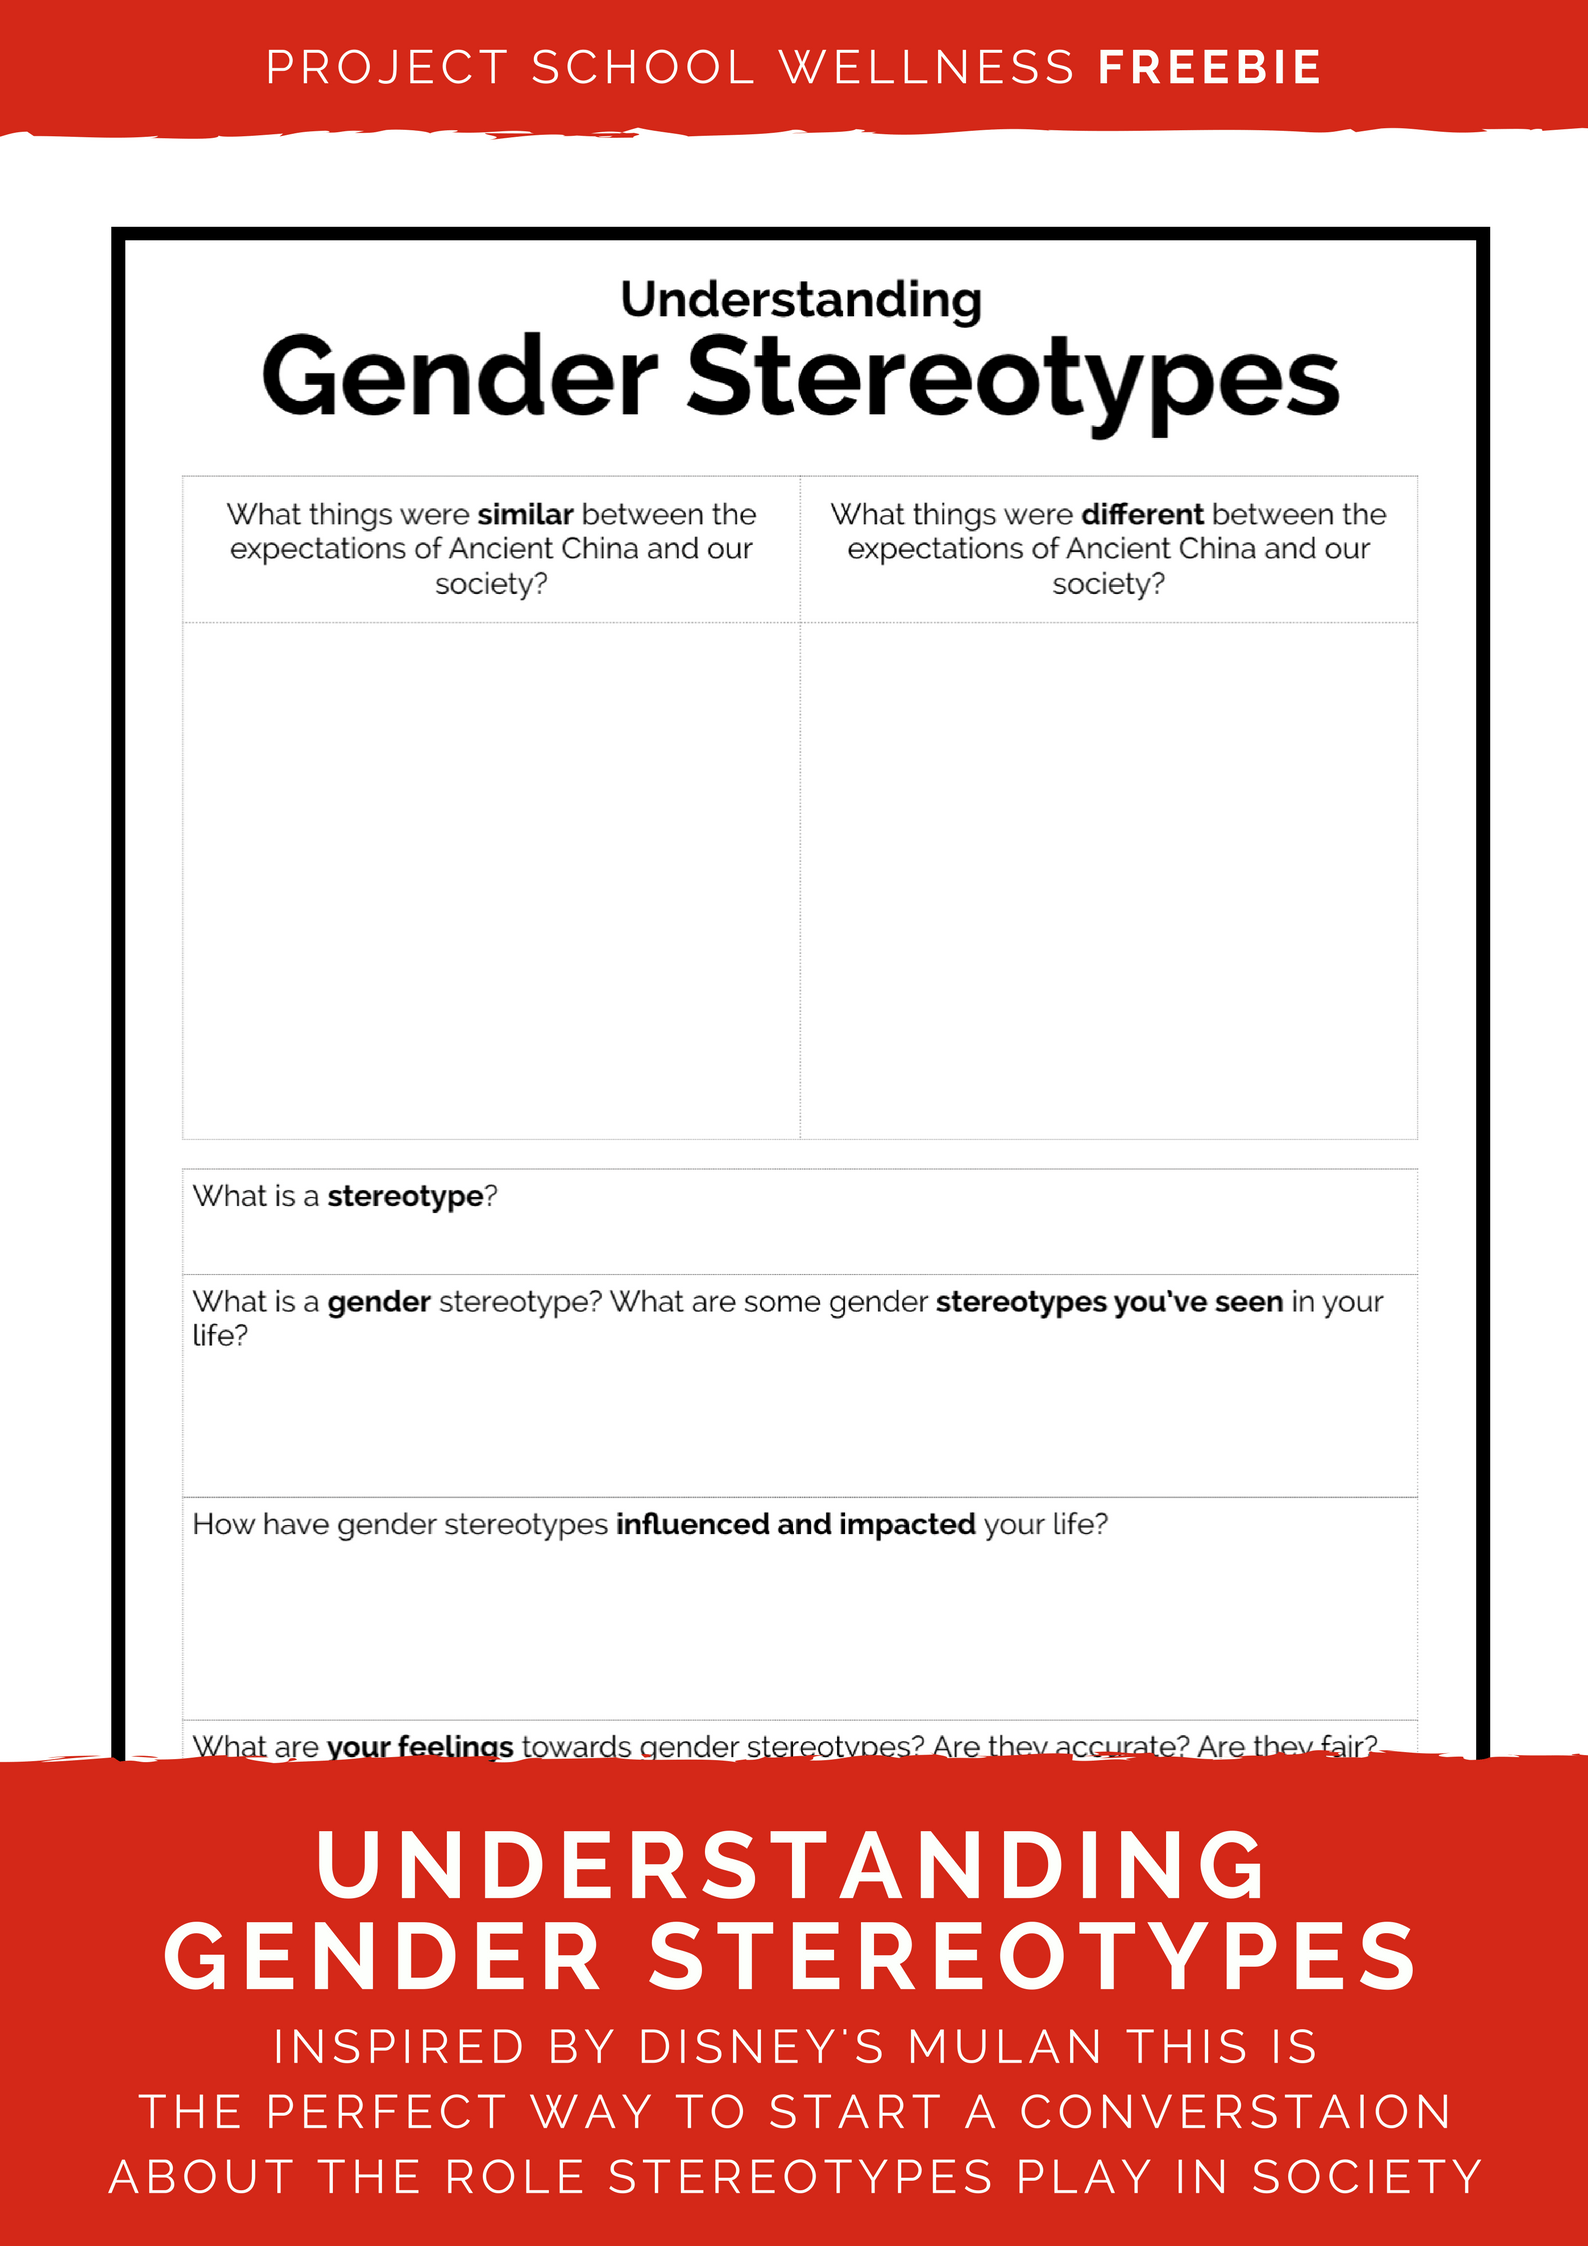 Worksheets Stereotype Worksheets talking gender stereotypes with mulan project school wellness inspired by disneys use this freebie to talk about your middle